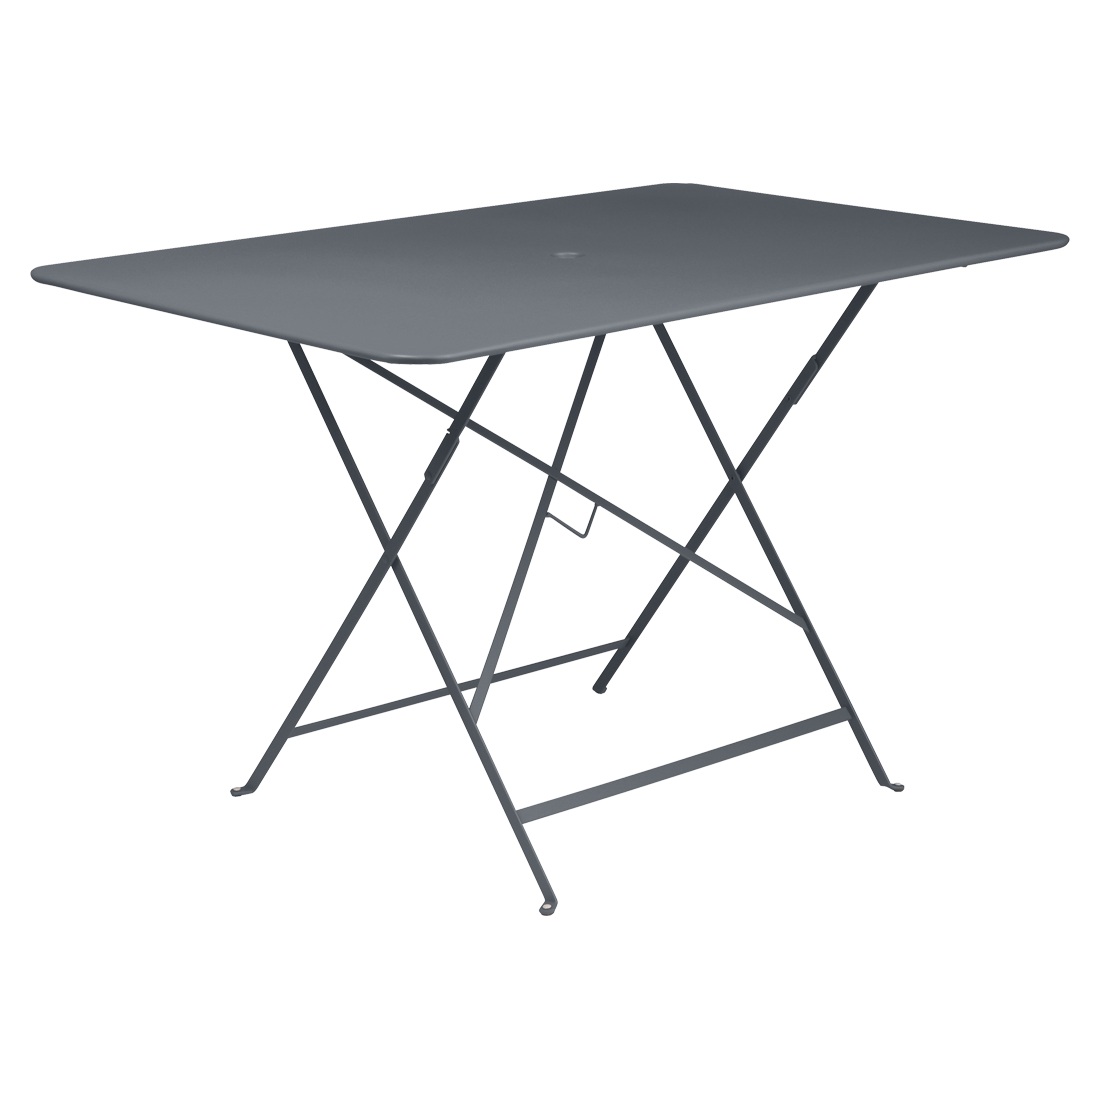 Table bistro 117x77 cm table de jardin table pliante jardin - Table pliante de jardin ...